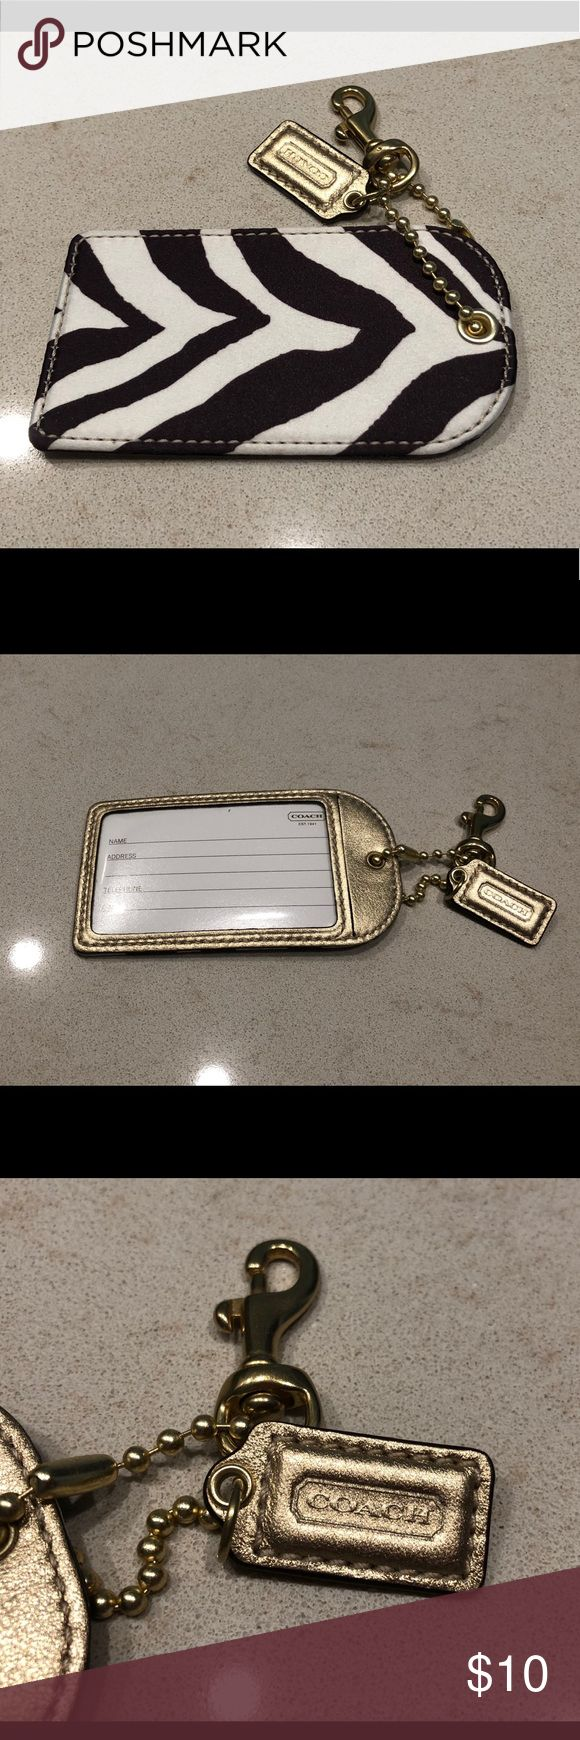 Coach Luggage Tag Never Used  Coach Zebra Luggage Tag  Colors White, Brown, and Metallic Gold Coach Accessories